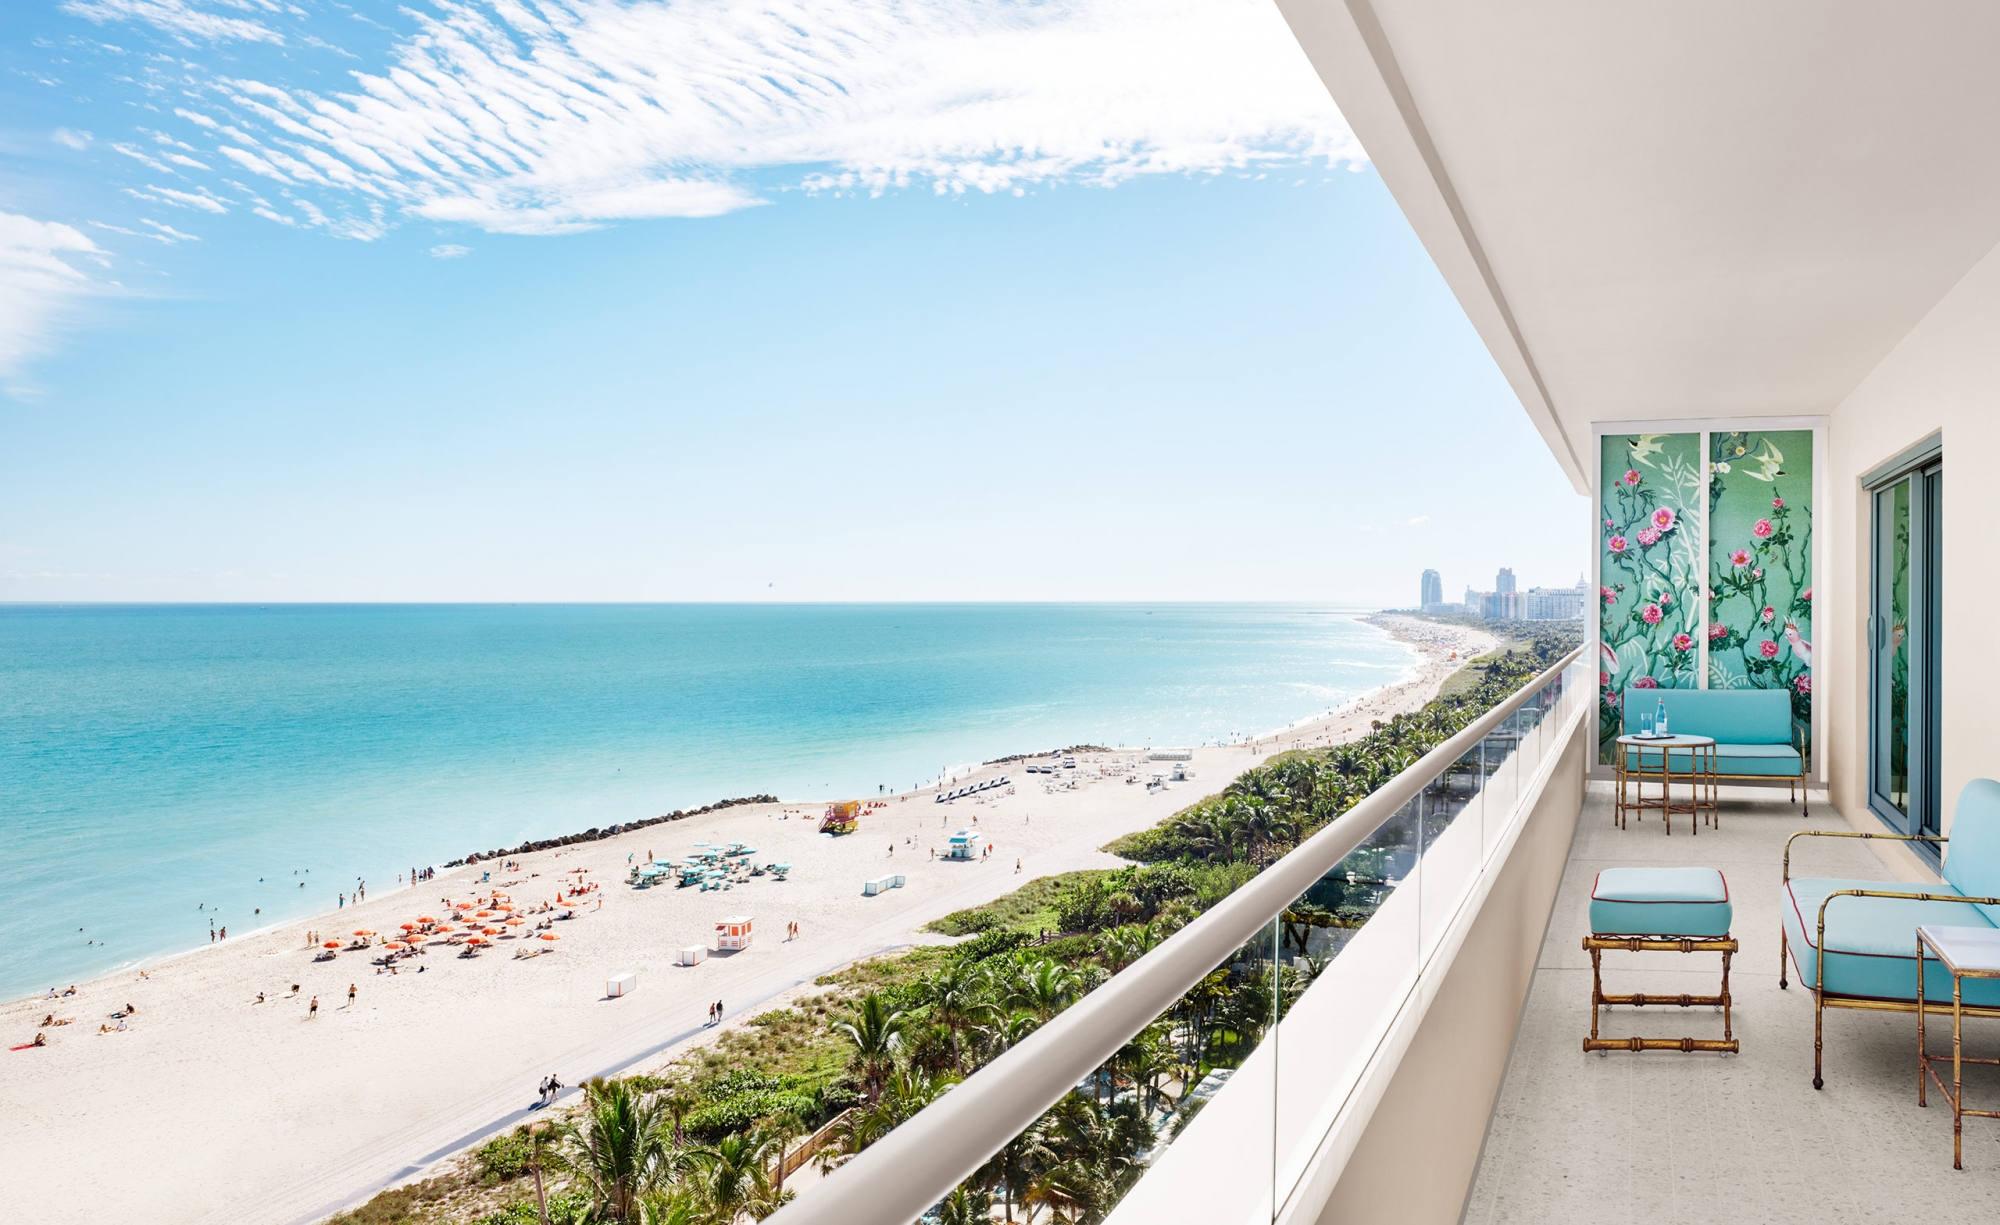 hotels in miami with kitchen moen chateau faucet the penthouse residences at faena hotel beach